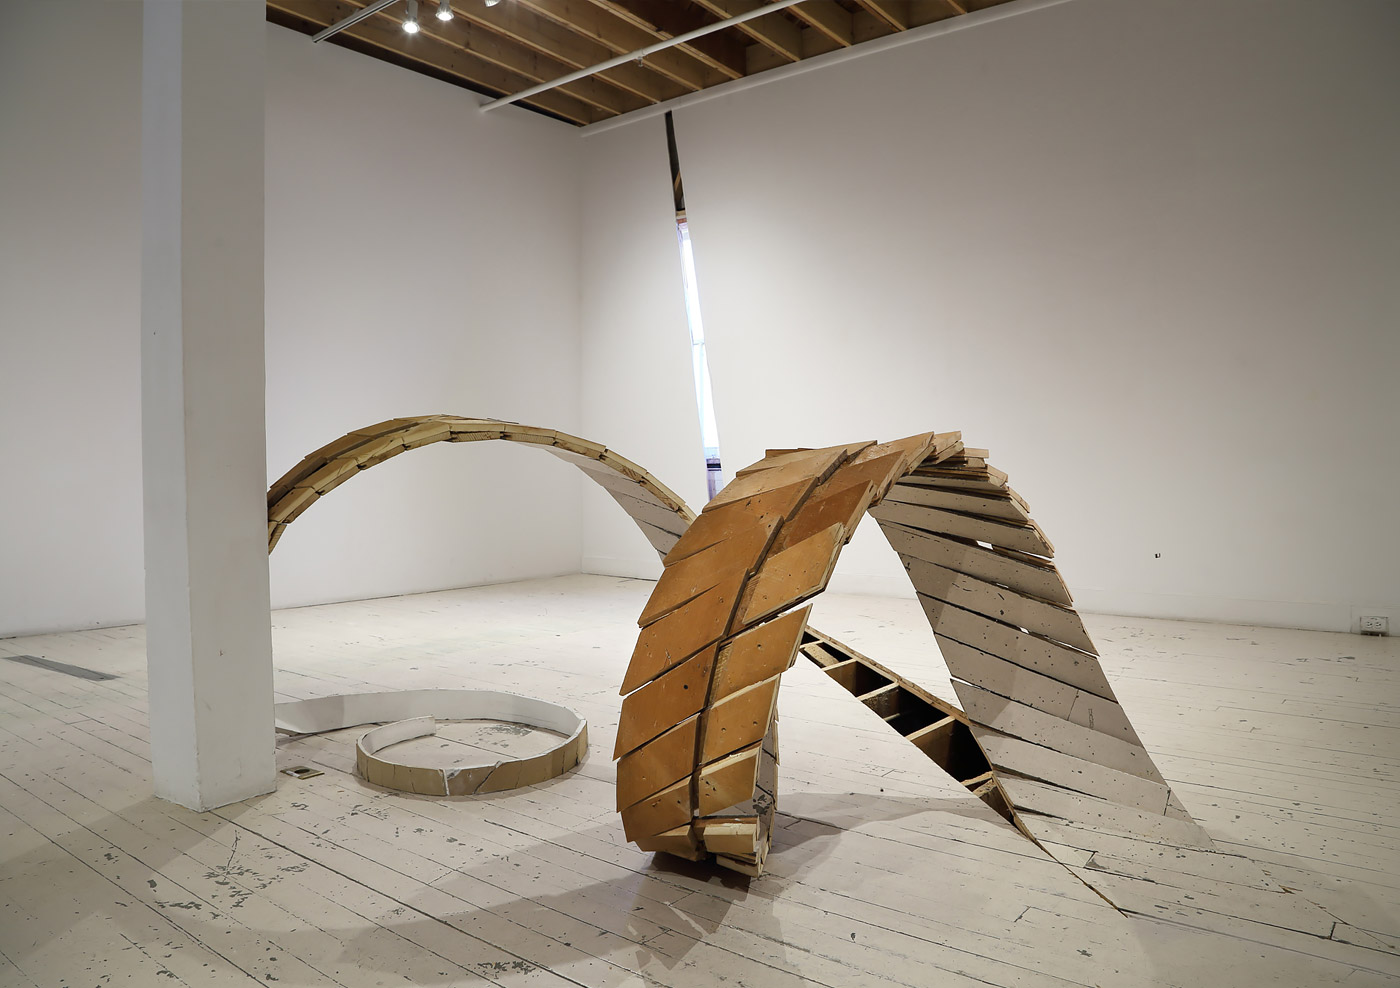 Mind Blowing Sculptural Installations by Robbie Rowlands